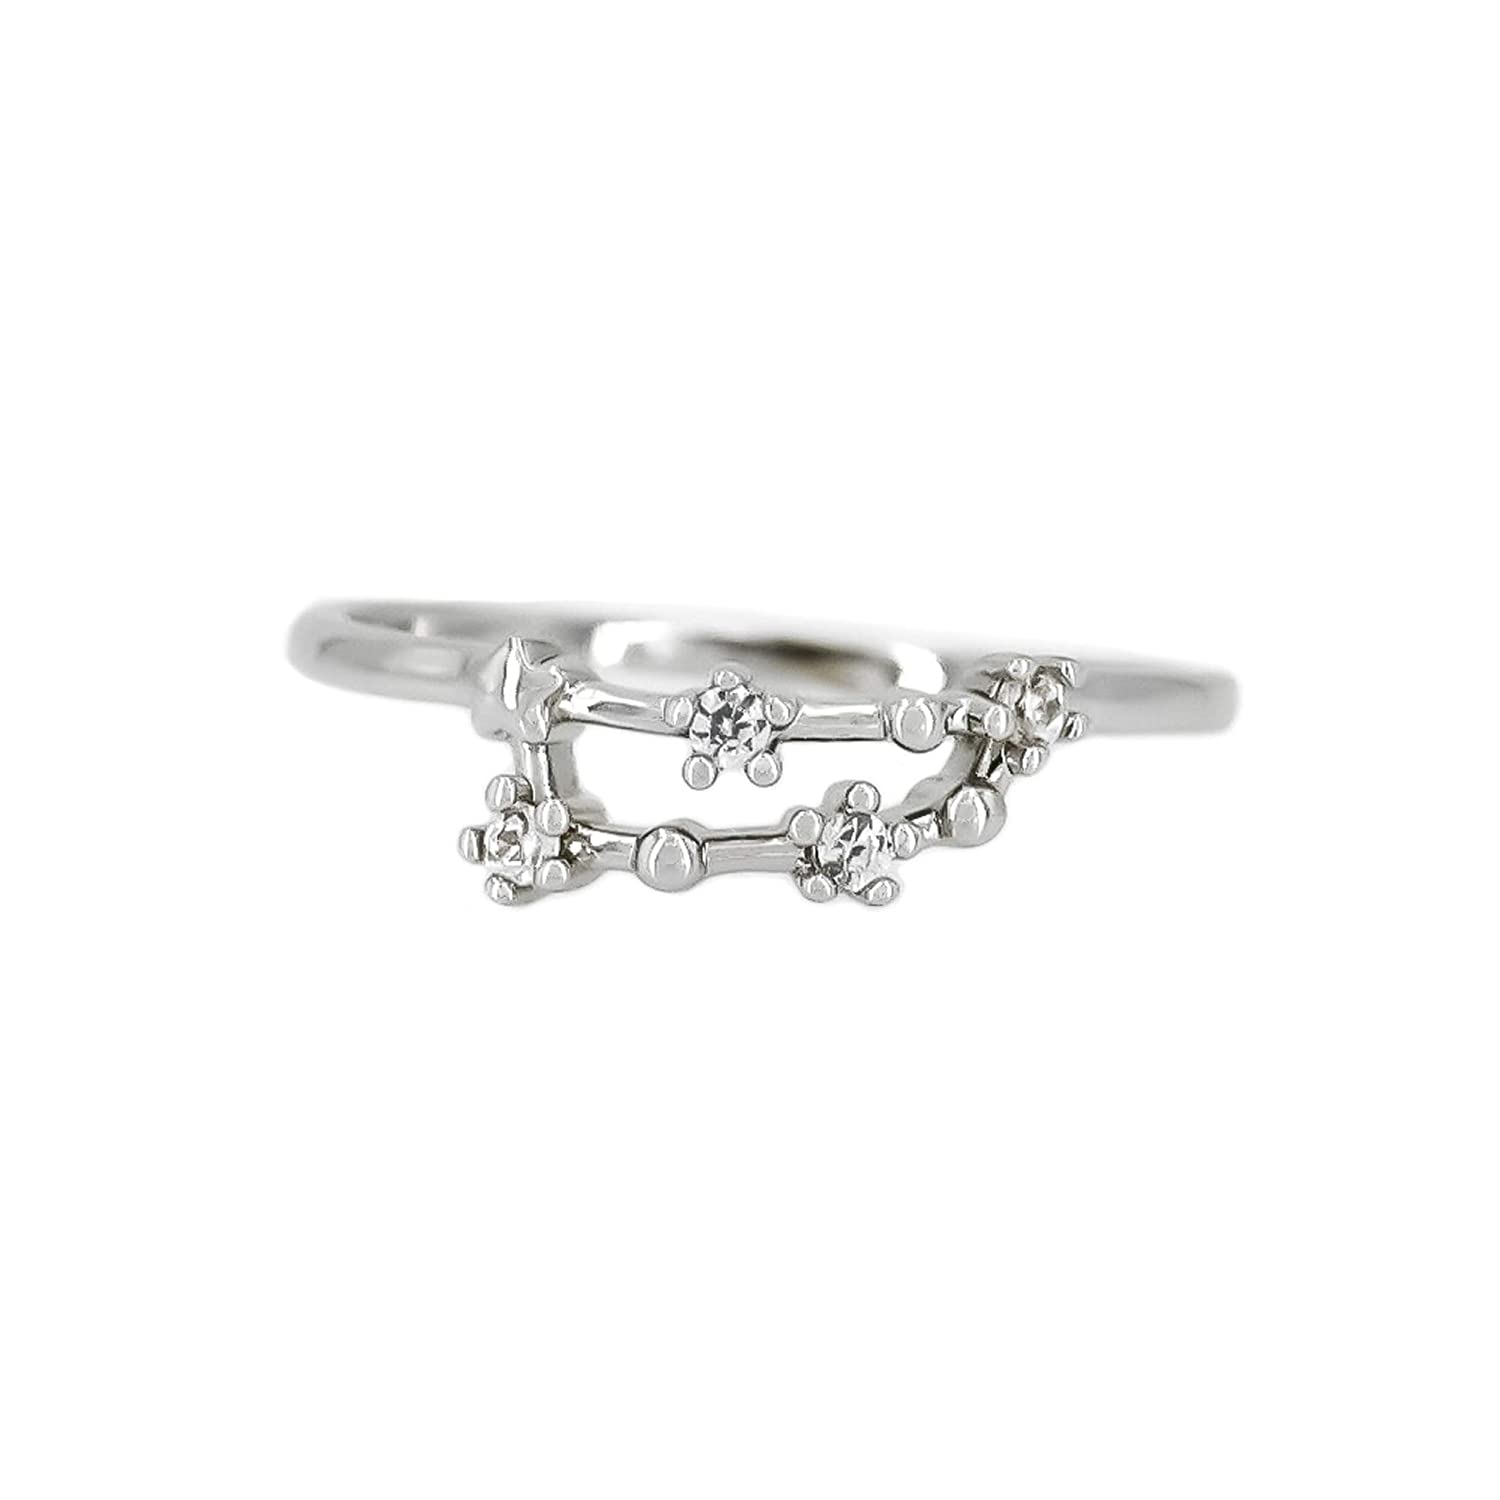 7db9ee3736 Zodiac Constellation Ring with Cubic Zirconia Stones Made of Zinc, Steel &  Brass.